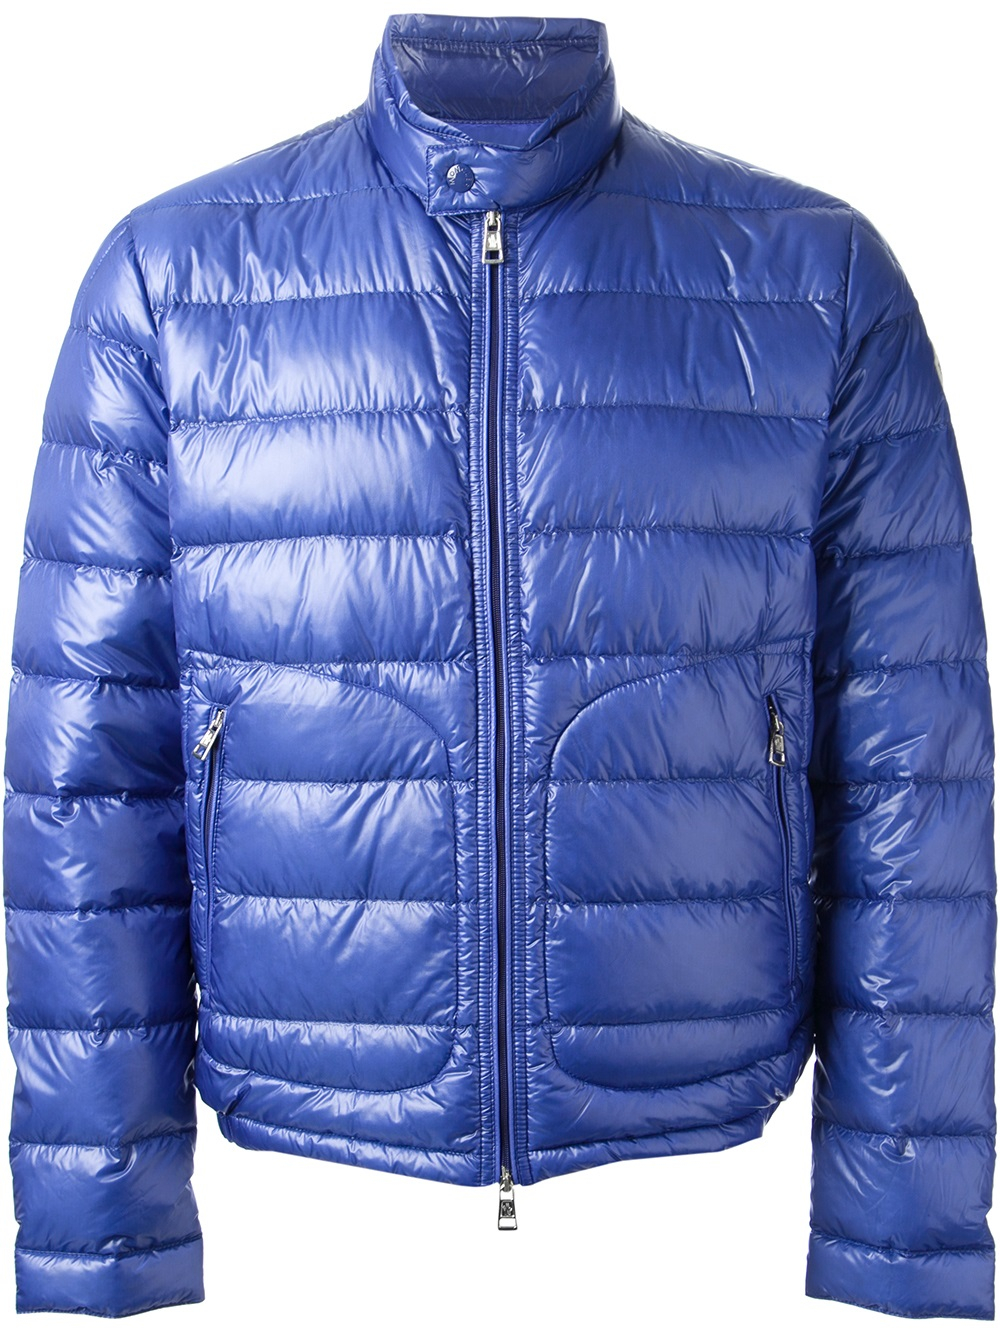 moncler acorus jacket in blue for men lyst. Black Bedroom Furniture Sets. Home Design Ideas